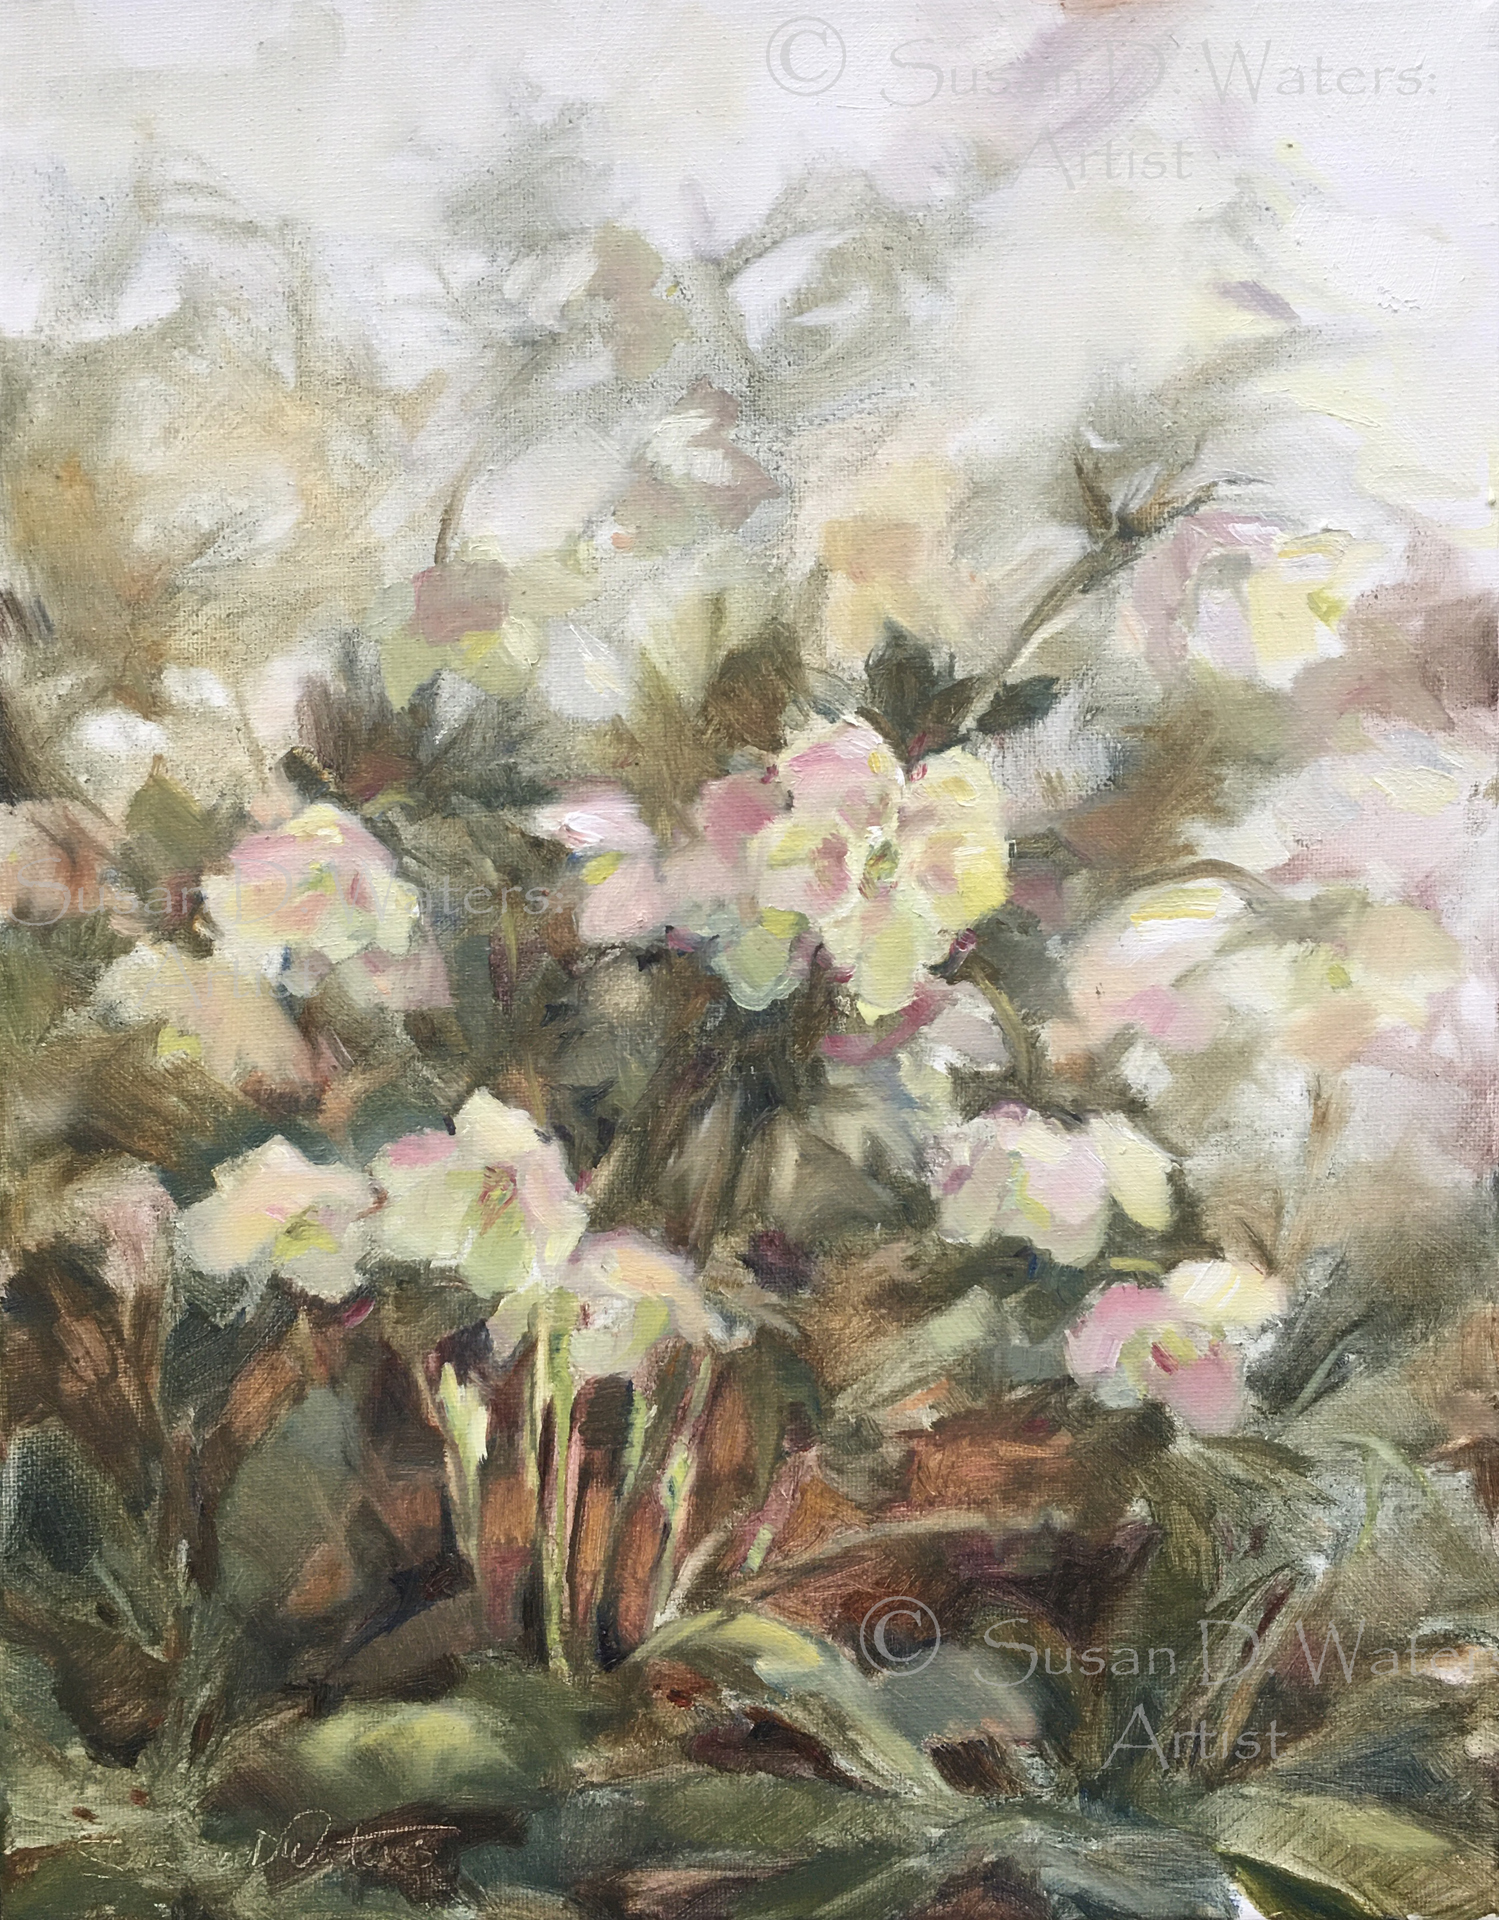 Hellebores, Susan Duke Waters